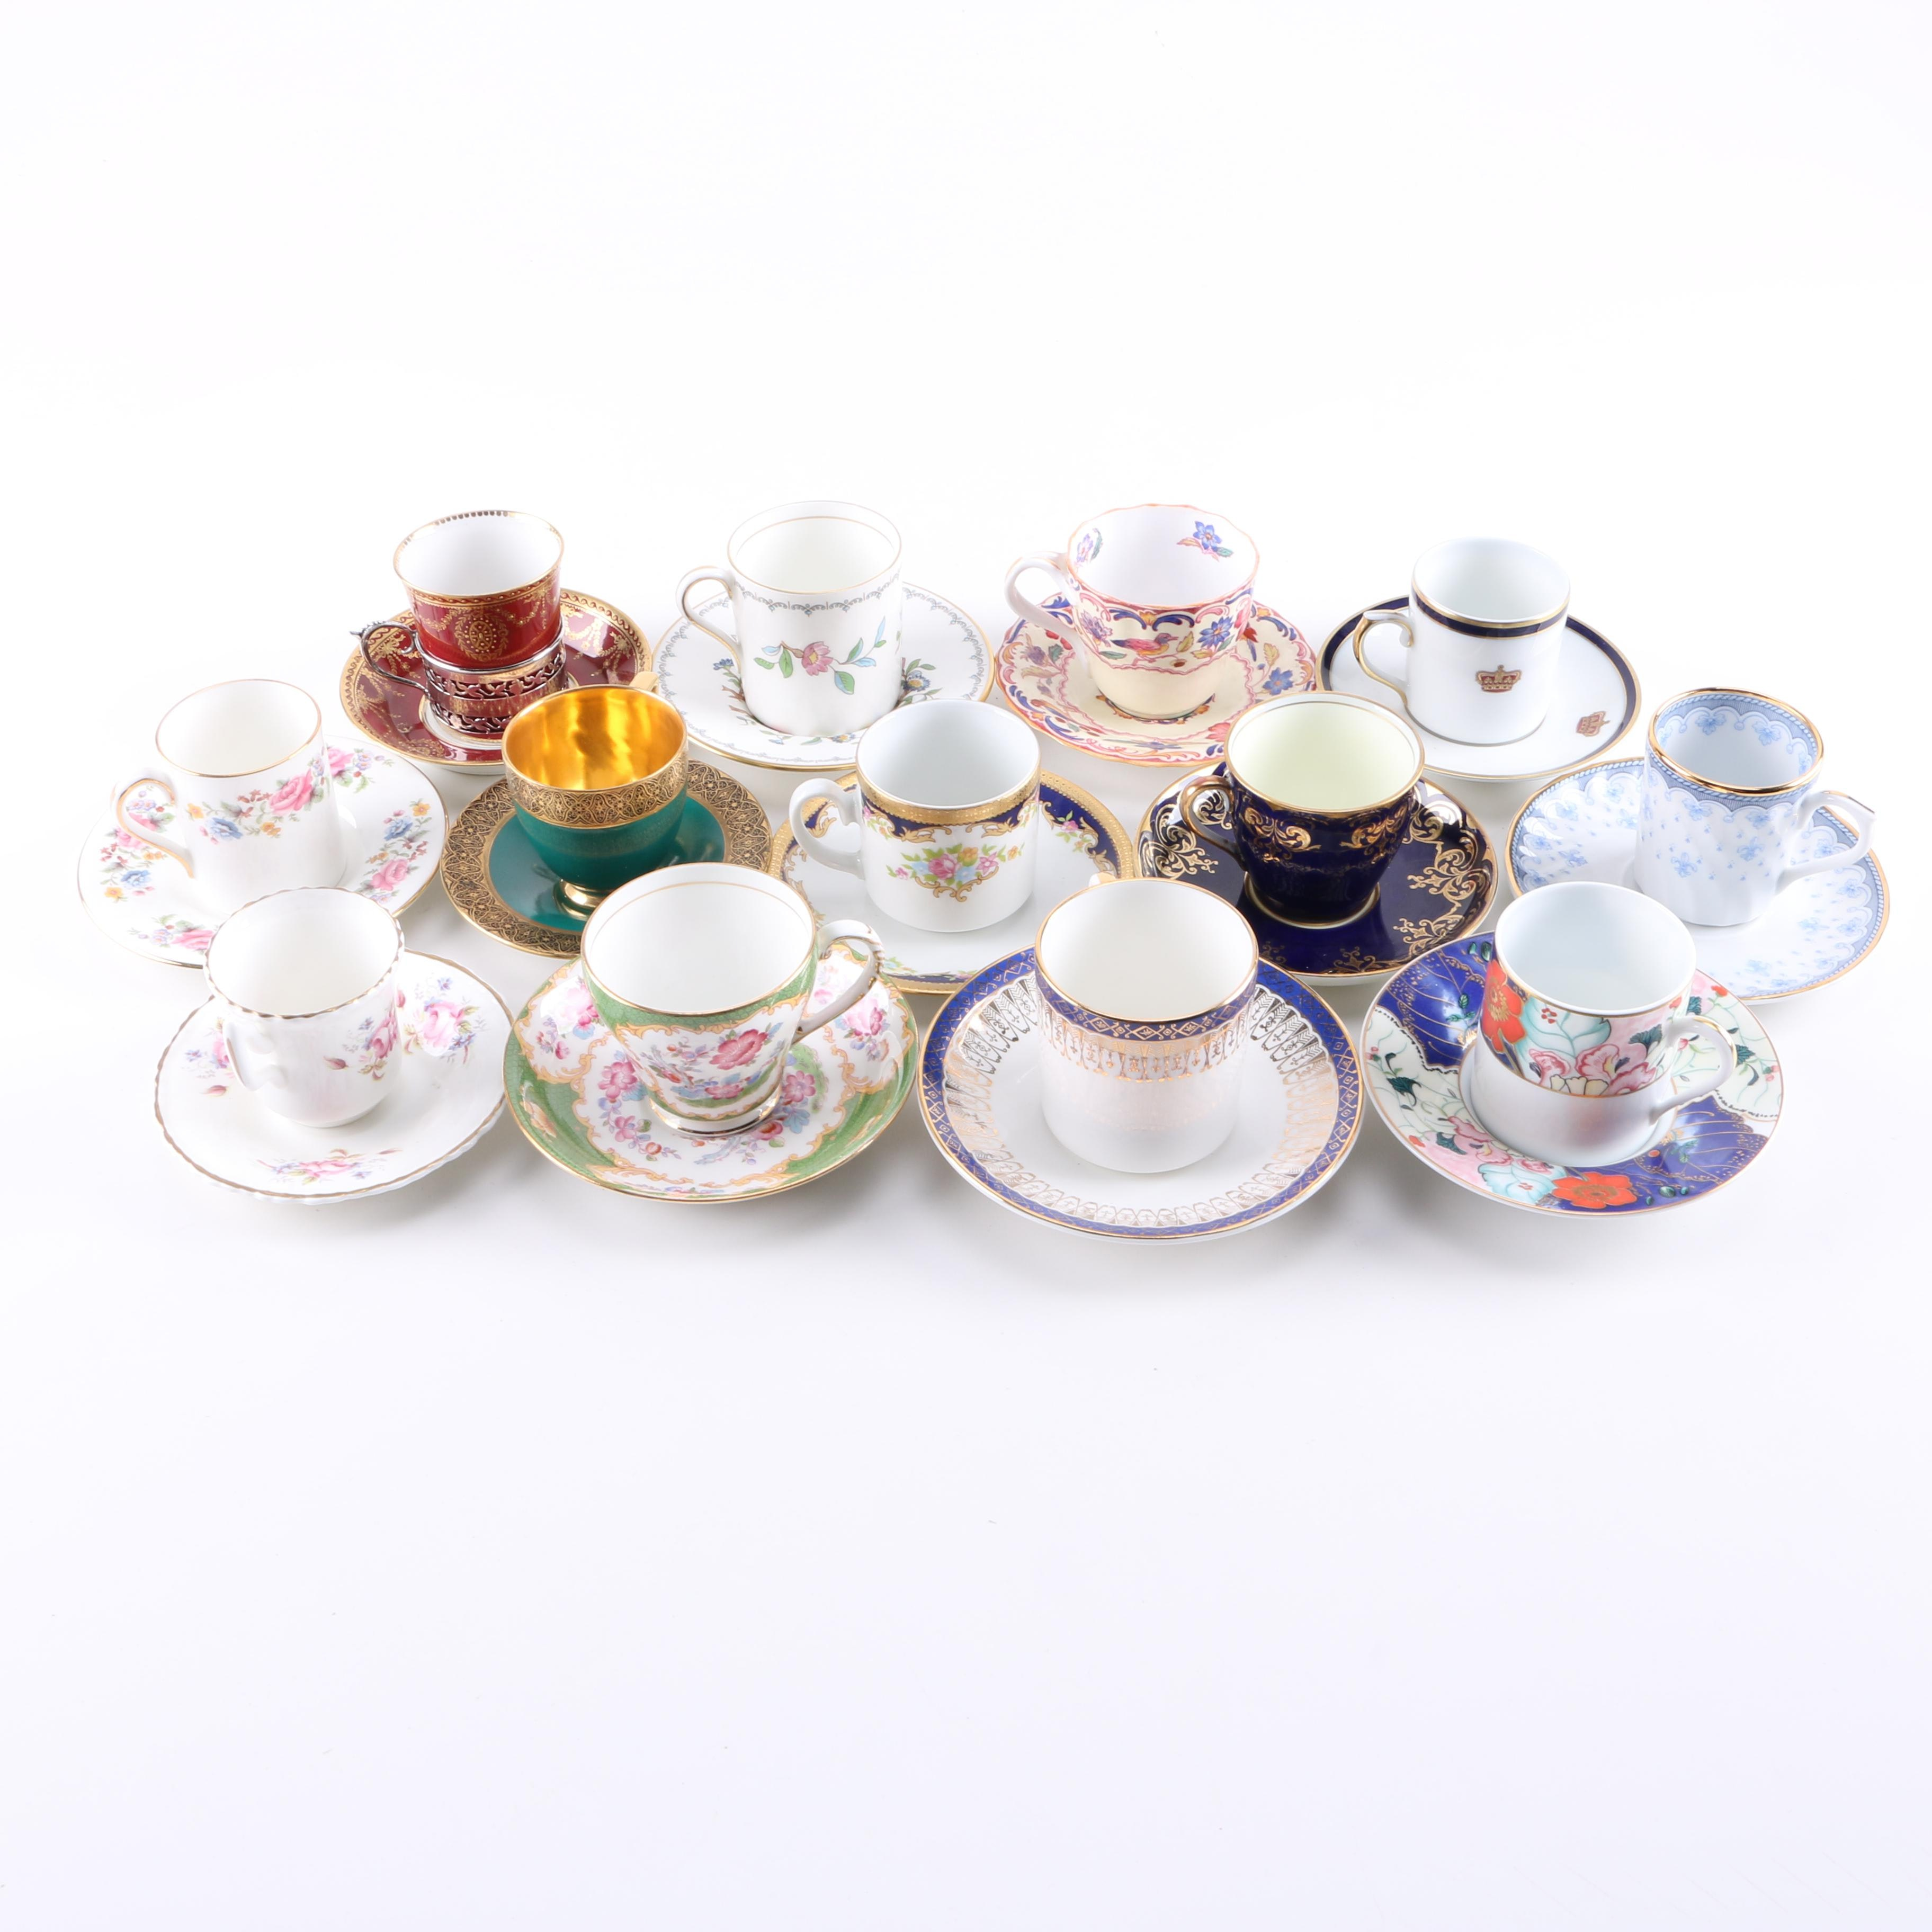 Demitasse Cups and Saucers Including Antique Paragon